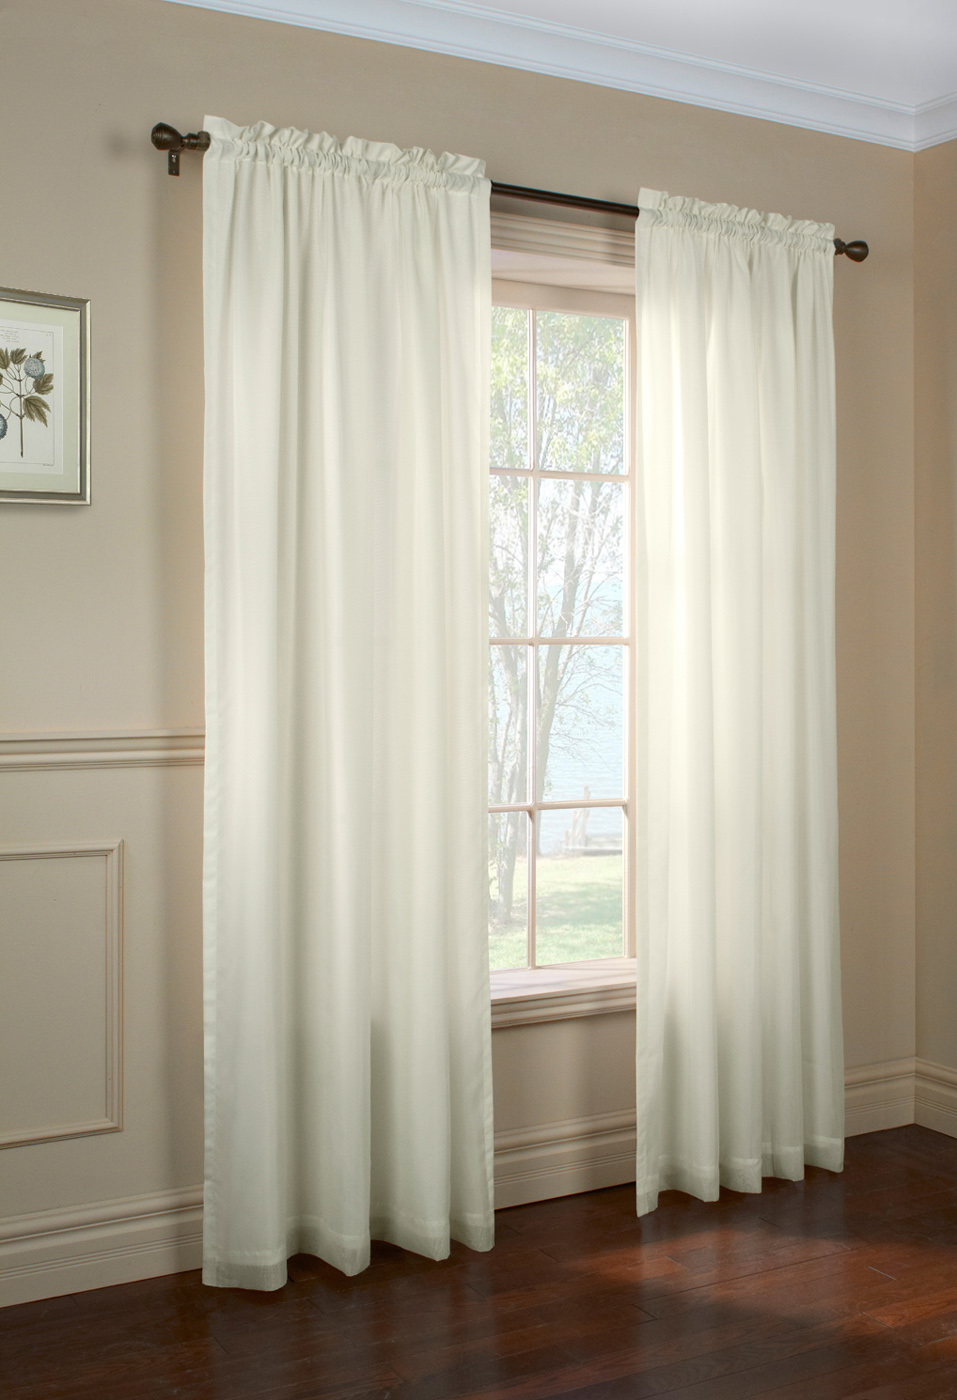 Rhapsody Sheer Voile Curtain Panels